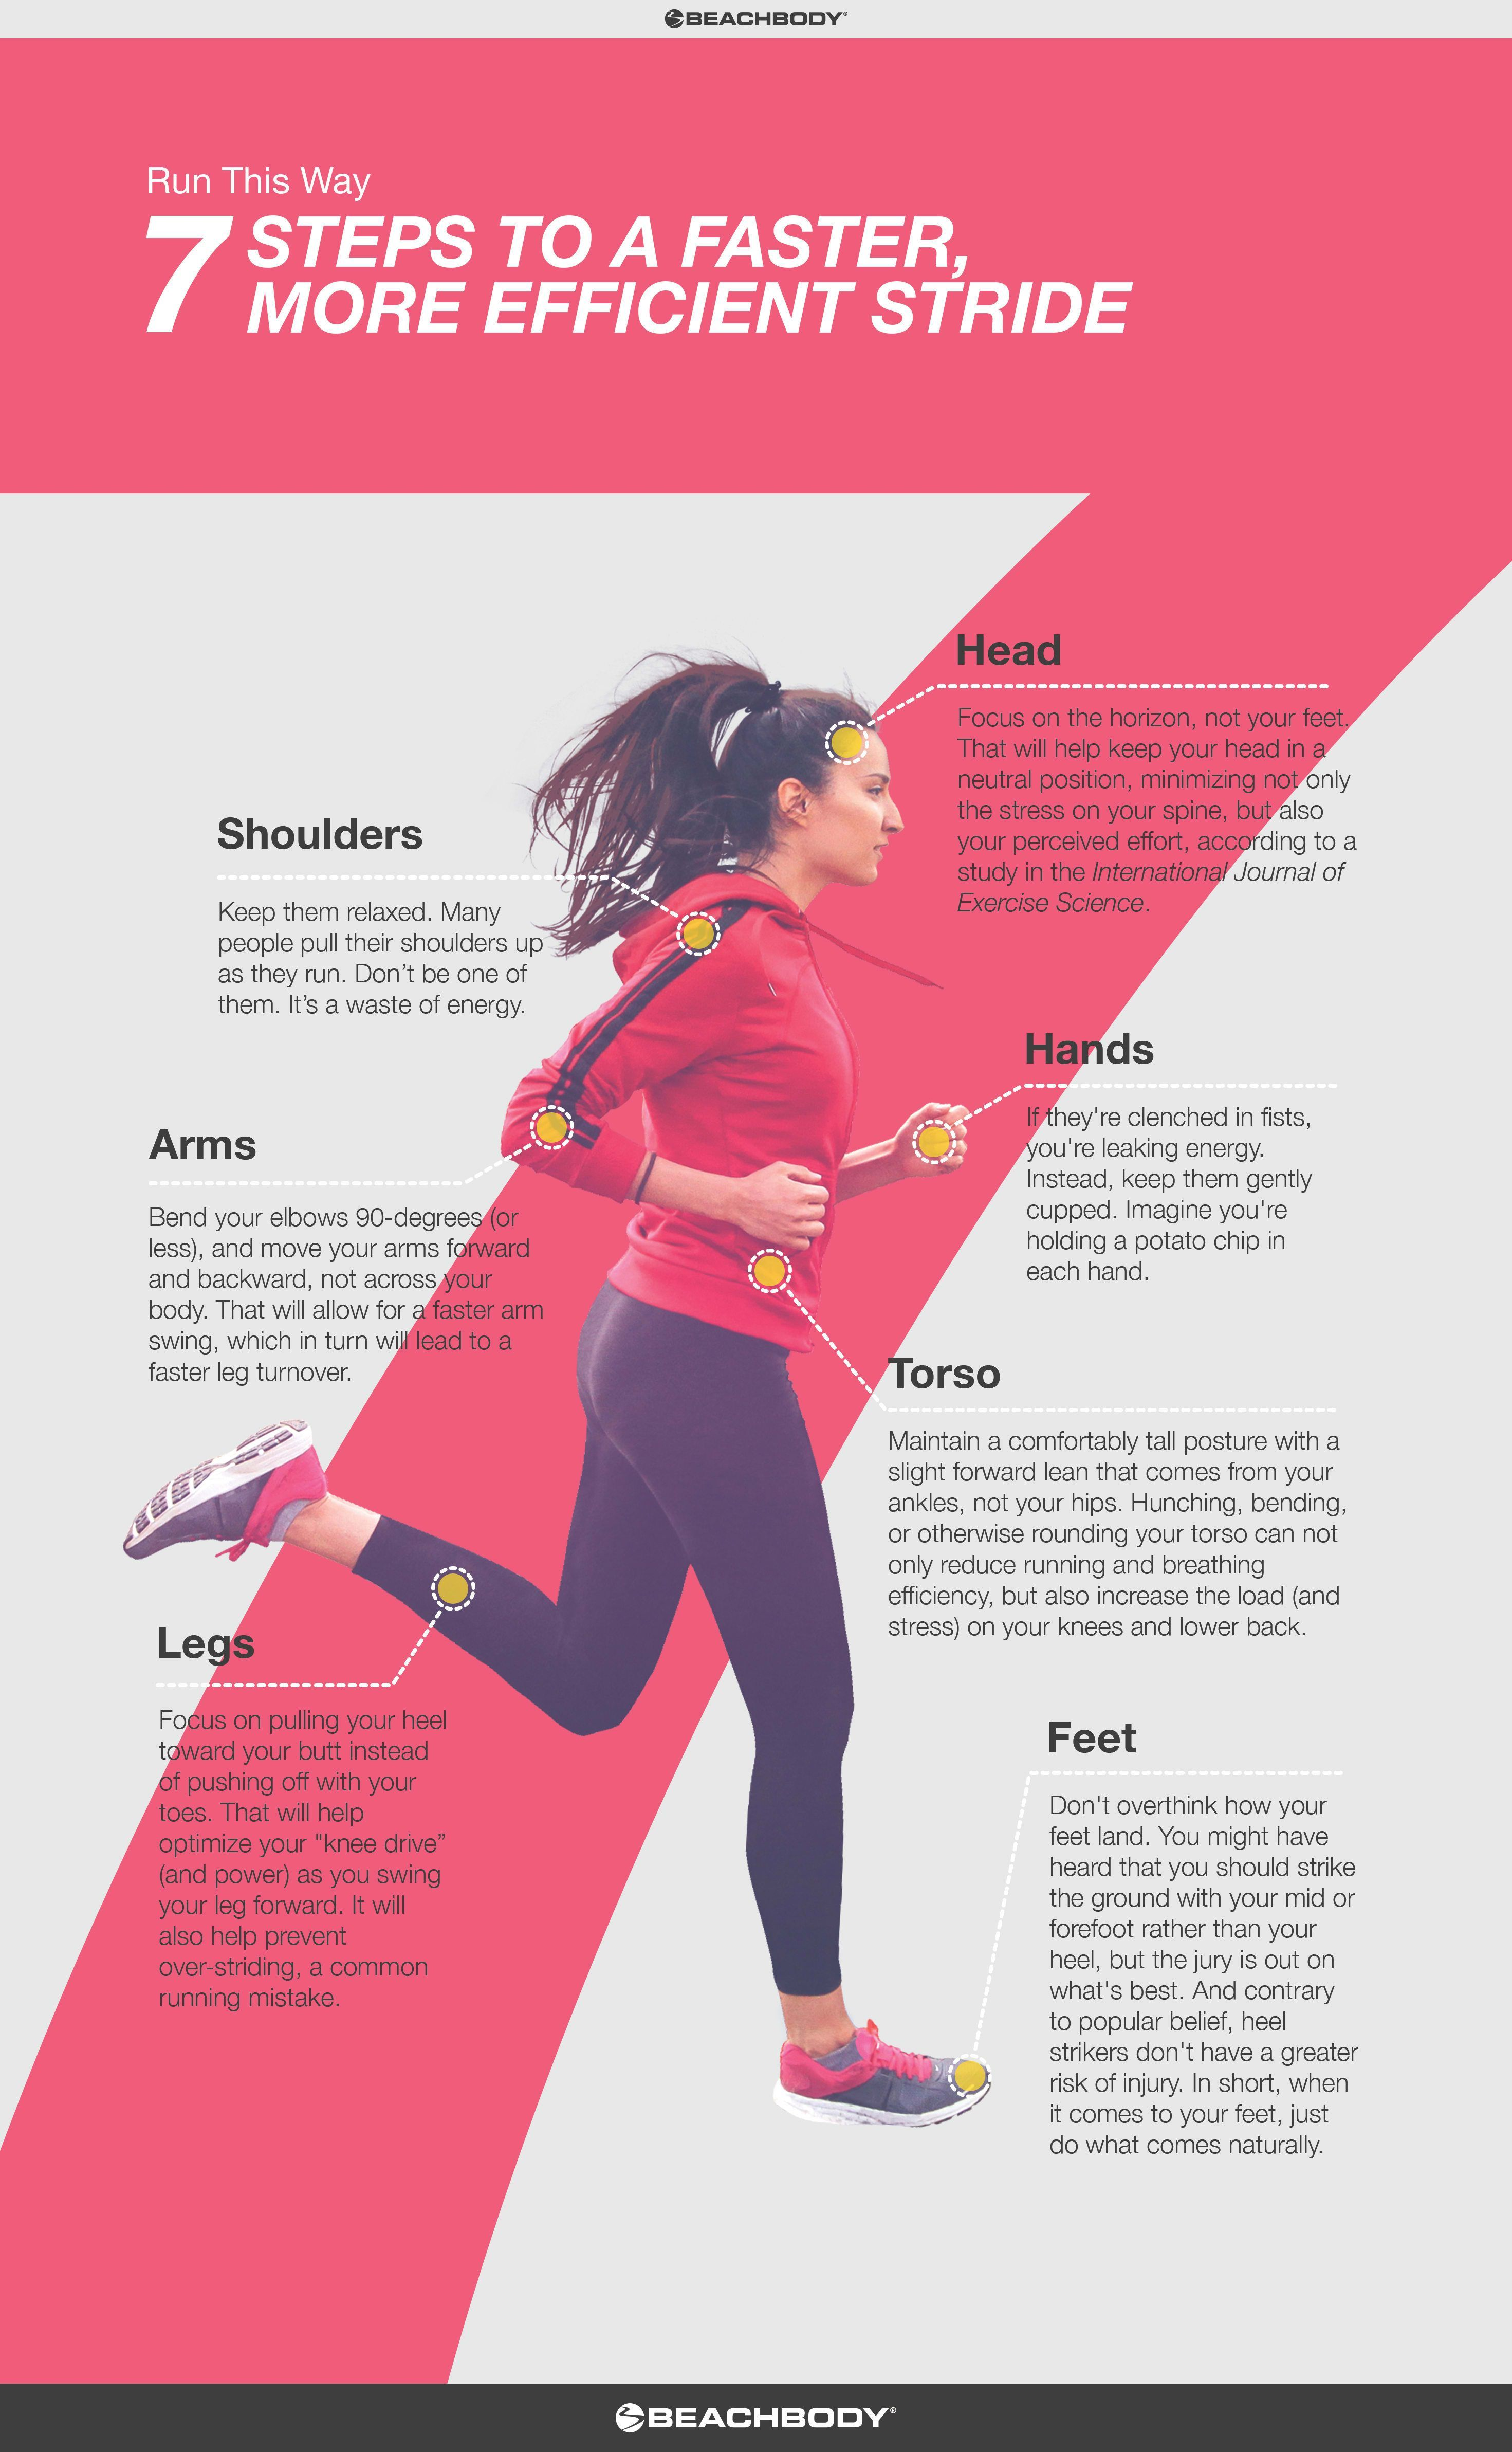 How To Improve Your Running Form Running Running Techniques Running Workouts Running Form